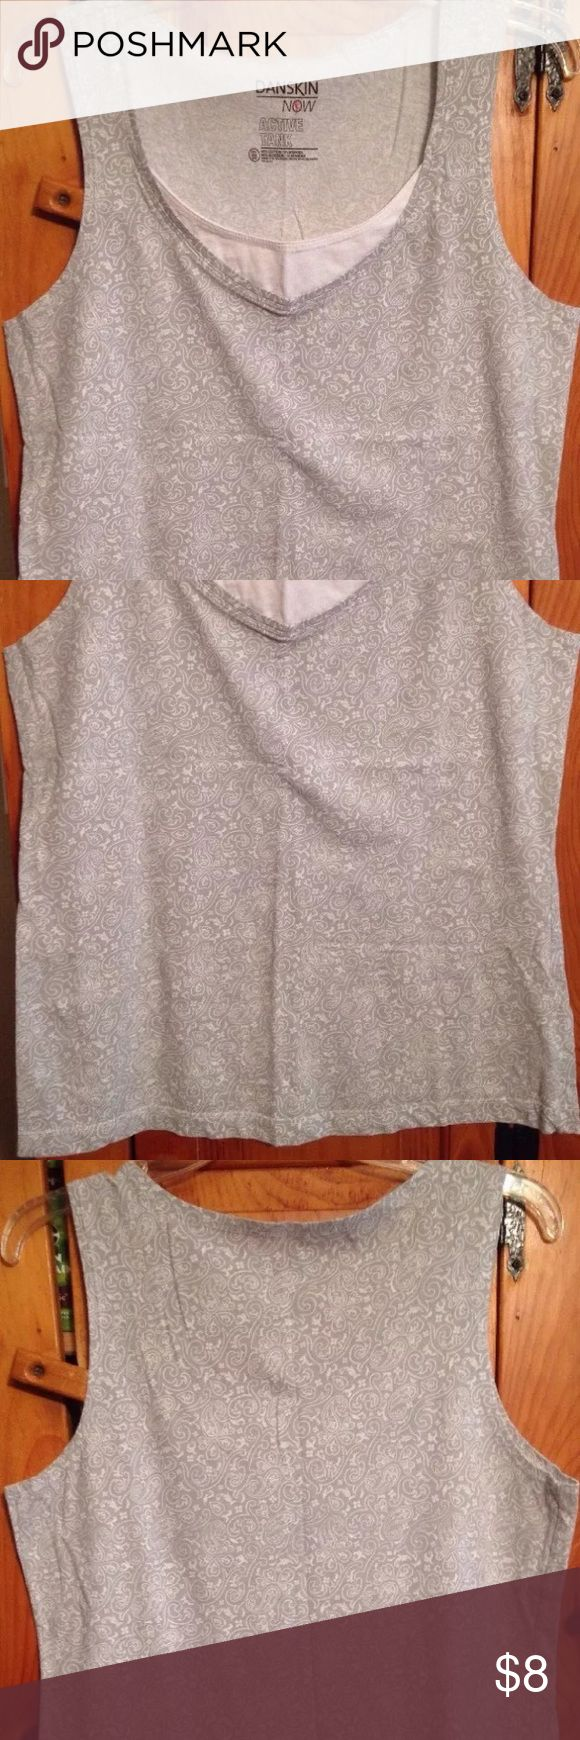 "DANSKIN GRAY ATHLETIC TANK TOP Women's XXL 20 Excellent condition gray and white paisley print athletic work-out tank top by DANSKIN! Size women's XXL (20). Chest: 19"" lying flat pit to pit Length: 26"" Material: 95% cotton, 5% spandex Danskin Now Tops Tank Tops"